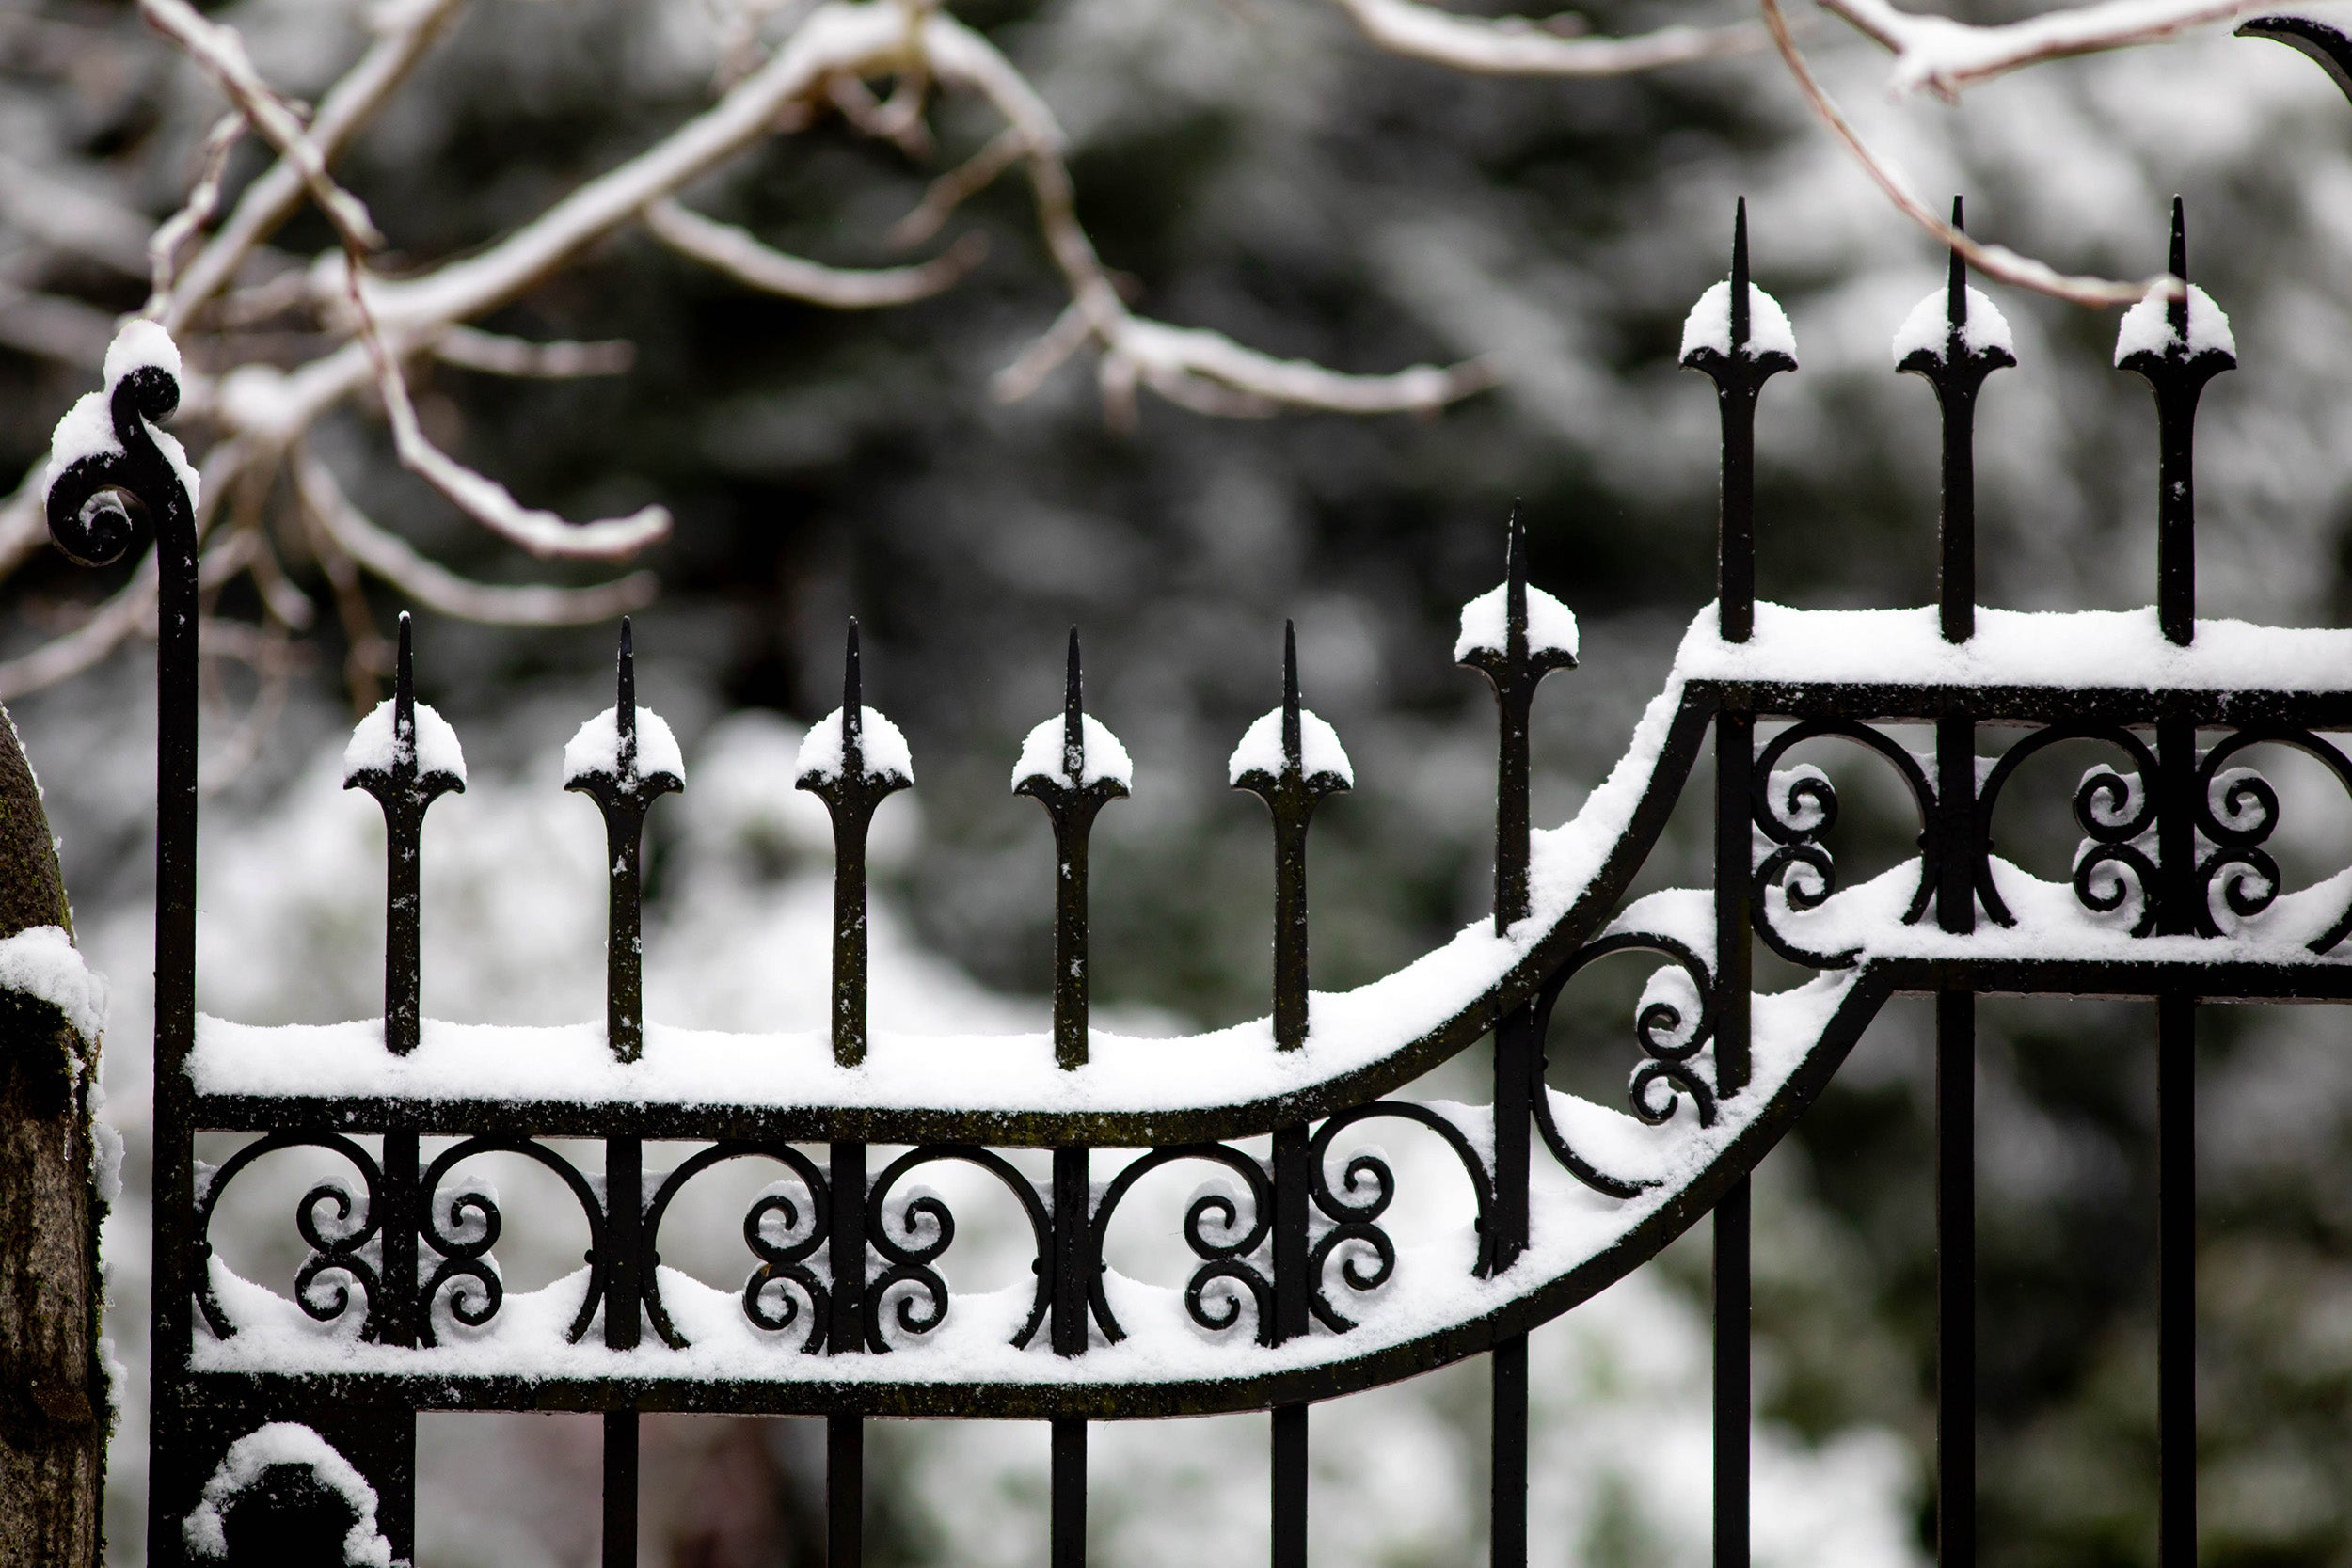 Snow blankets the Washington Street Gate.